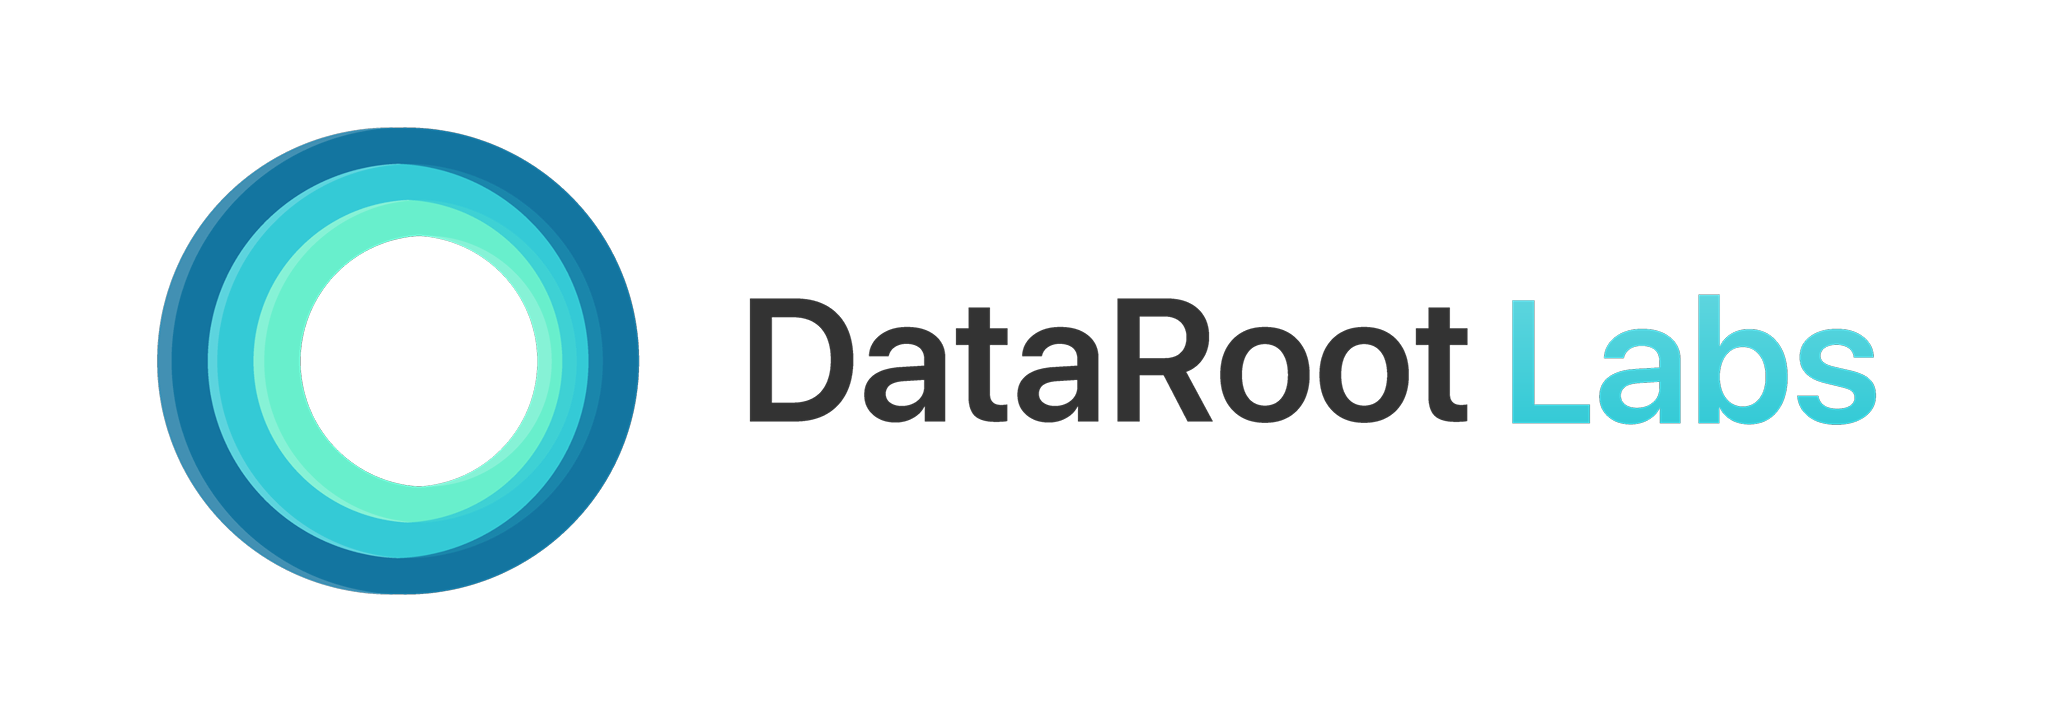 data_root_labs